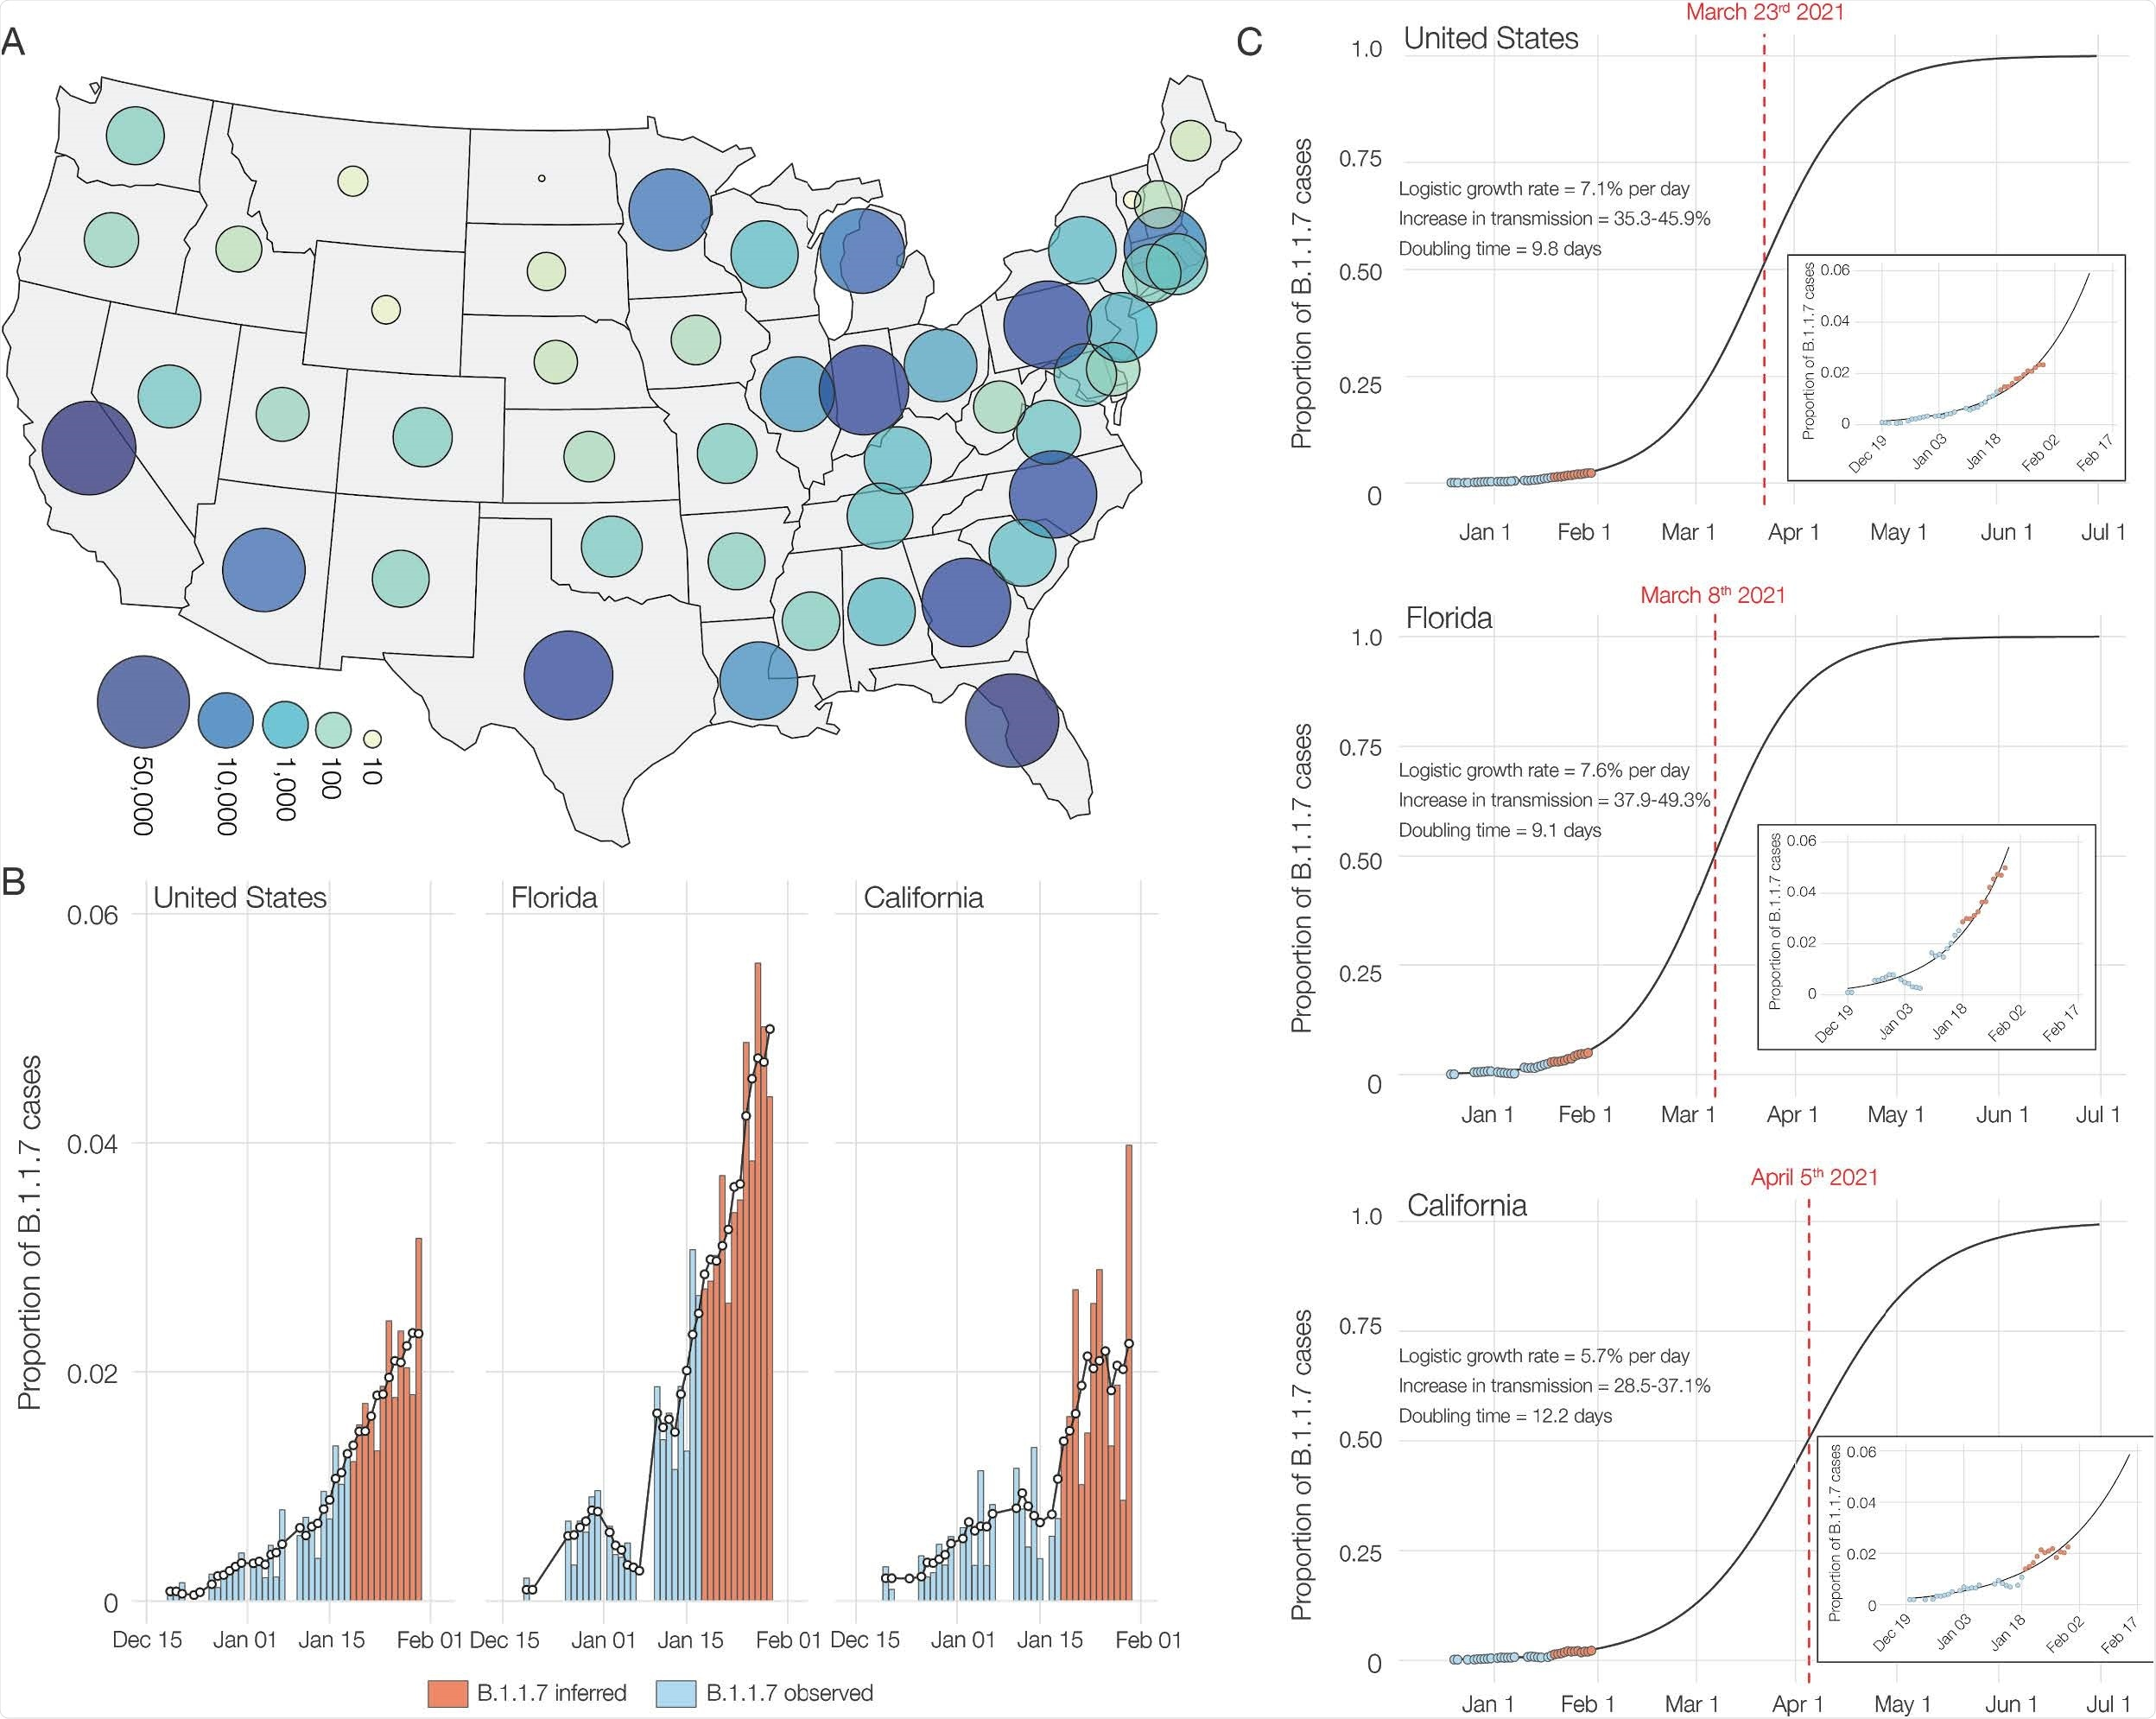 SGTF and B.1.1.7 in SARS-CoV-2 tests at Helix since December 15, 2020. (A) Map of contiguous states in the USA with each bubble representing the number of positive tests from each state. (B) Estimated proportion of B.1.1.7 in total number of positive tests with Cq(N gene) < 27, in the U.S., California and Florida from December 15th, 2020 to January 30th, 2021. The proportion of B.1.1.7 samples was estimated using: (Observed B.1.1.7 sequences/Sequenced SGTF samples) * (Positive tests with SGTF/Total positive tests). Due to the lag in sequencing, the average proportion of B.1.1.7 sequences in sequenced samples with SGTF from the last five days (January 13-18) was used to infer the proportion of B.1.1.7 cases in total positive tests for the January 19-30 time period between. The black line shows the 5-day rolling average of the estimated proportion of B.1.1.7 in total positives. (C) Logistic growth curves fit to the rolling average of the estimated proportion of B.1.1.7 in total positives for the U.S., Florida and California. The predicted time when the estimated proportion of B.1.1.7 cases crosses 0.5 is indicated in red.